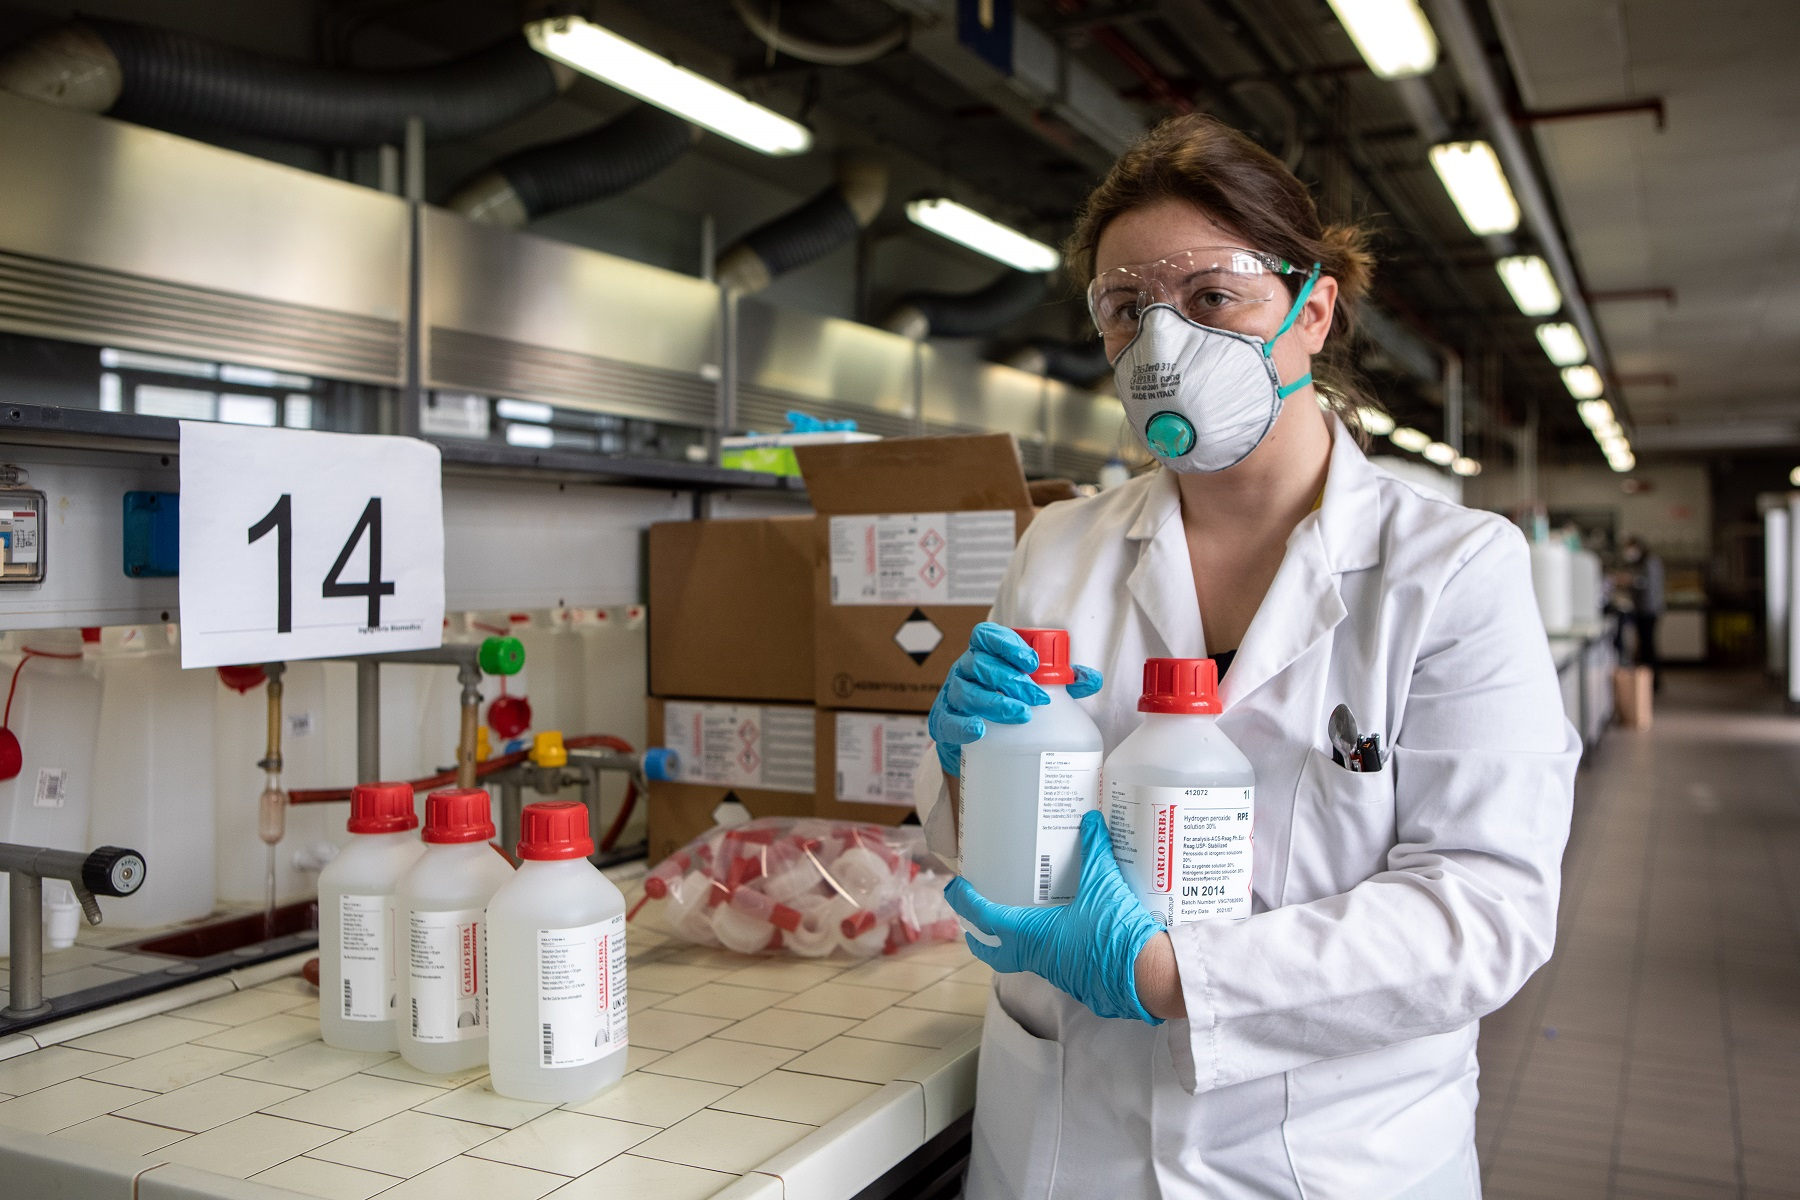 MILAN, ITALY - MARCH 19: A postdoctoral researcher, wearing gloves and a protective face mask, holds two bottles of hydrogen peroxide as she works inside the laboratory of Chemistry, Materials and Chemical Engineering 'Giulio Natta' at Politecnico di Milano on March 19, 2020 in Milan, Italy. Following the national shortage of hand sanitiser products due to the novel Coronavirus outbreak, Italy's largest technical university the Politecnico di Milano has started producing hand sanitiser to be delivered to the Protezione Civile, the Italian body dealing with the management of emergency events. The Italian government continues to enforce the nationwide lockdown measures to control the spread of COVID-19. (Photo by Emanuele Cremaschi/Getty Images)